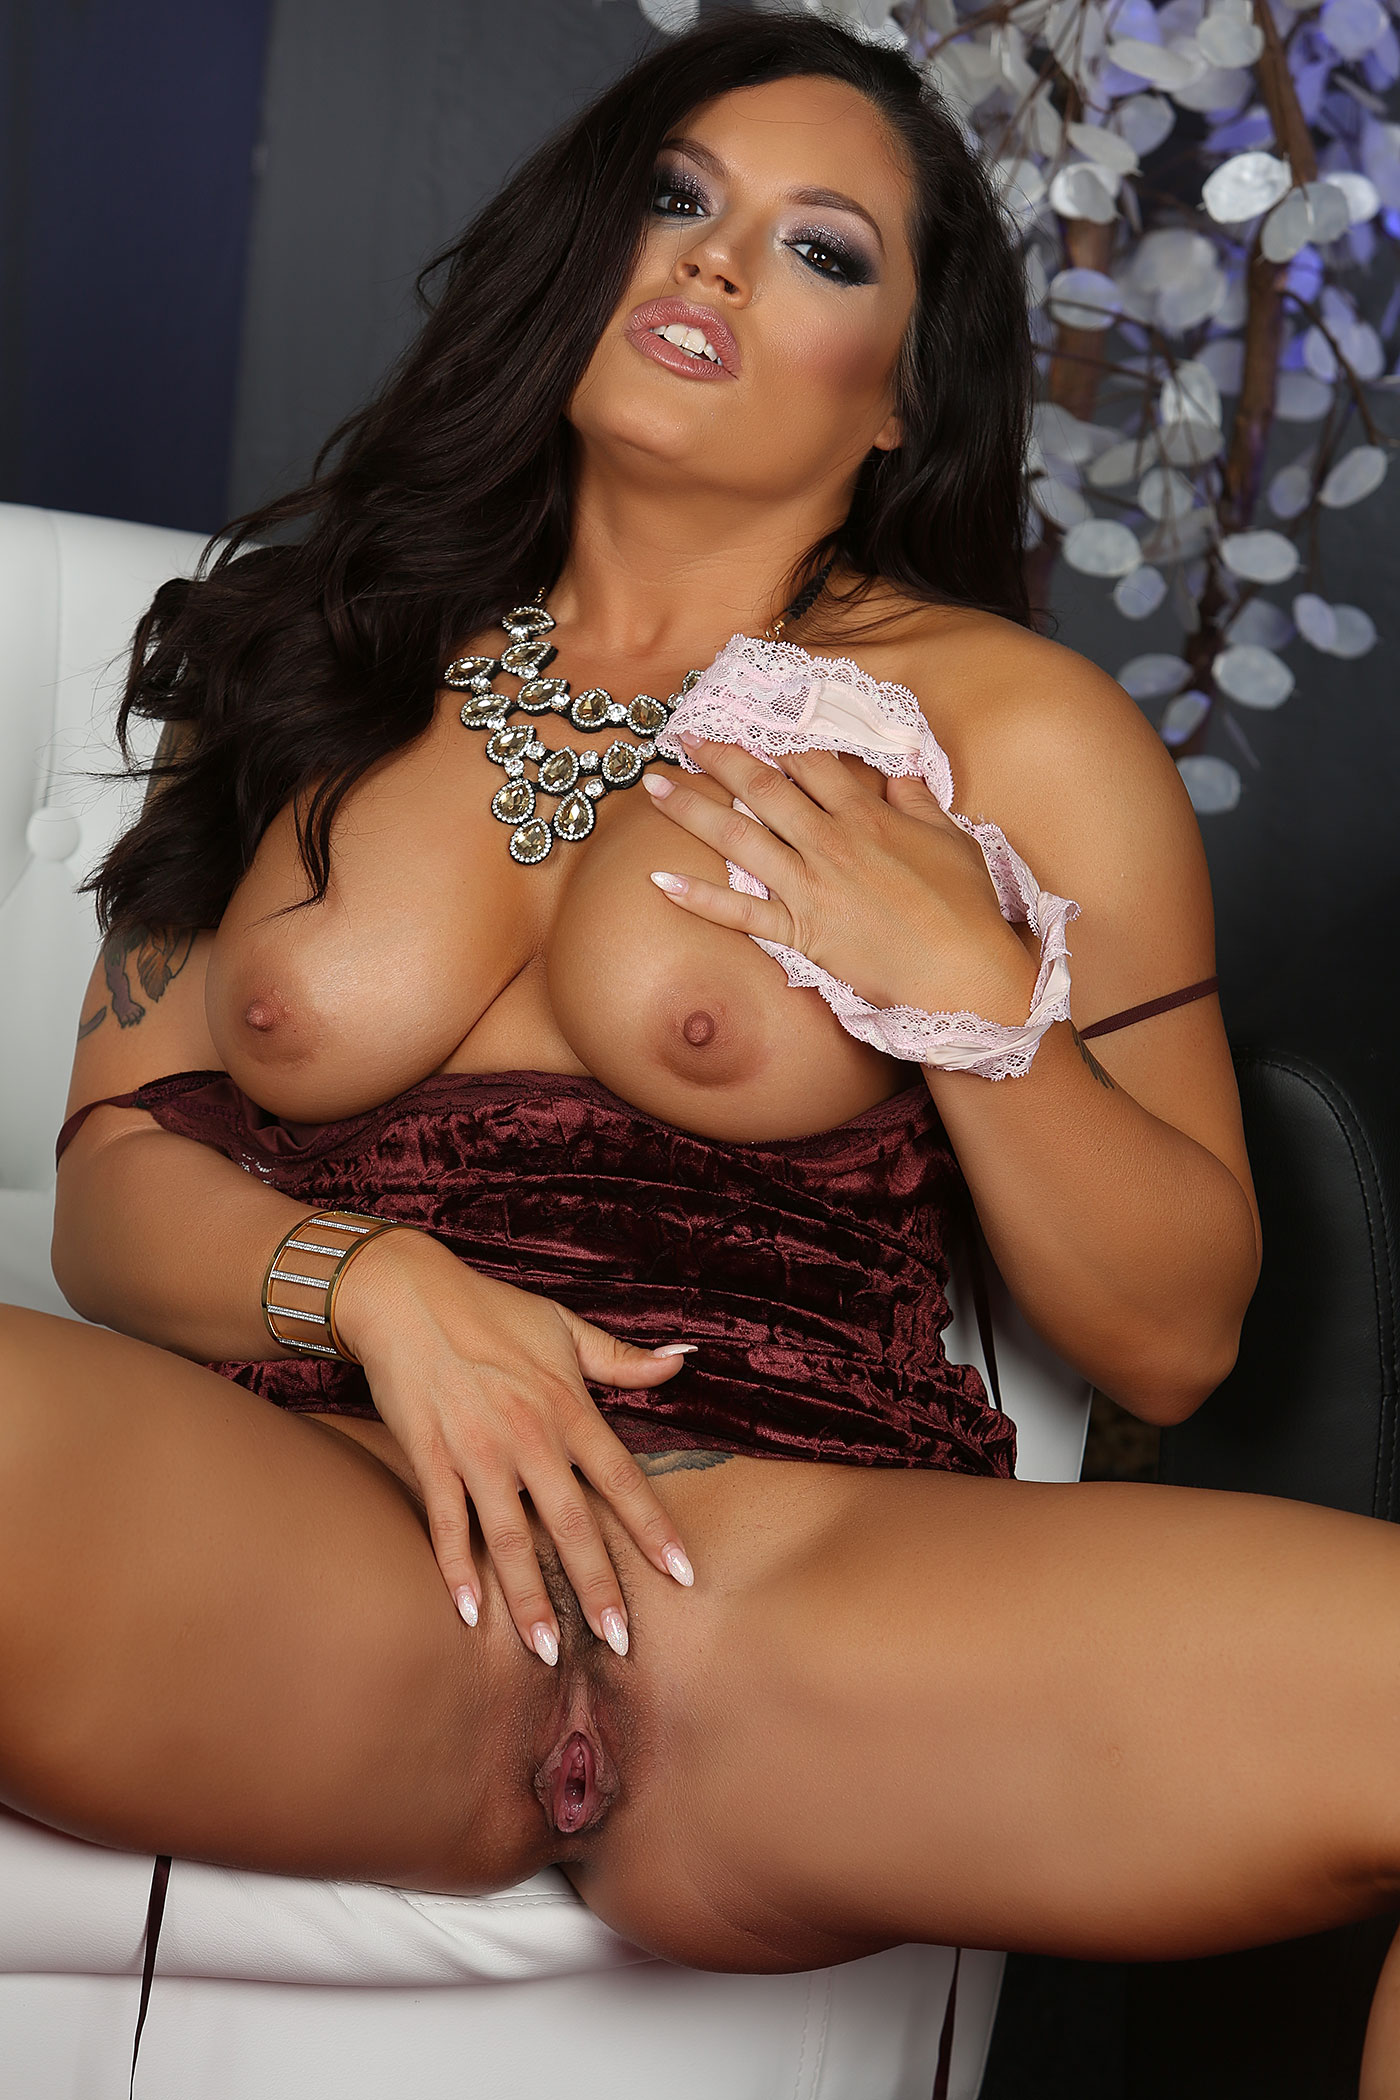 Hot milf jewels jade banging in rv - 1 3